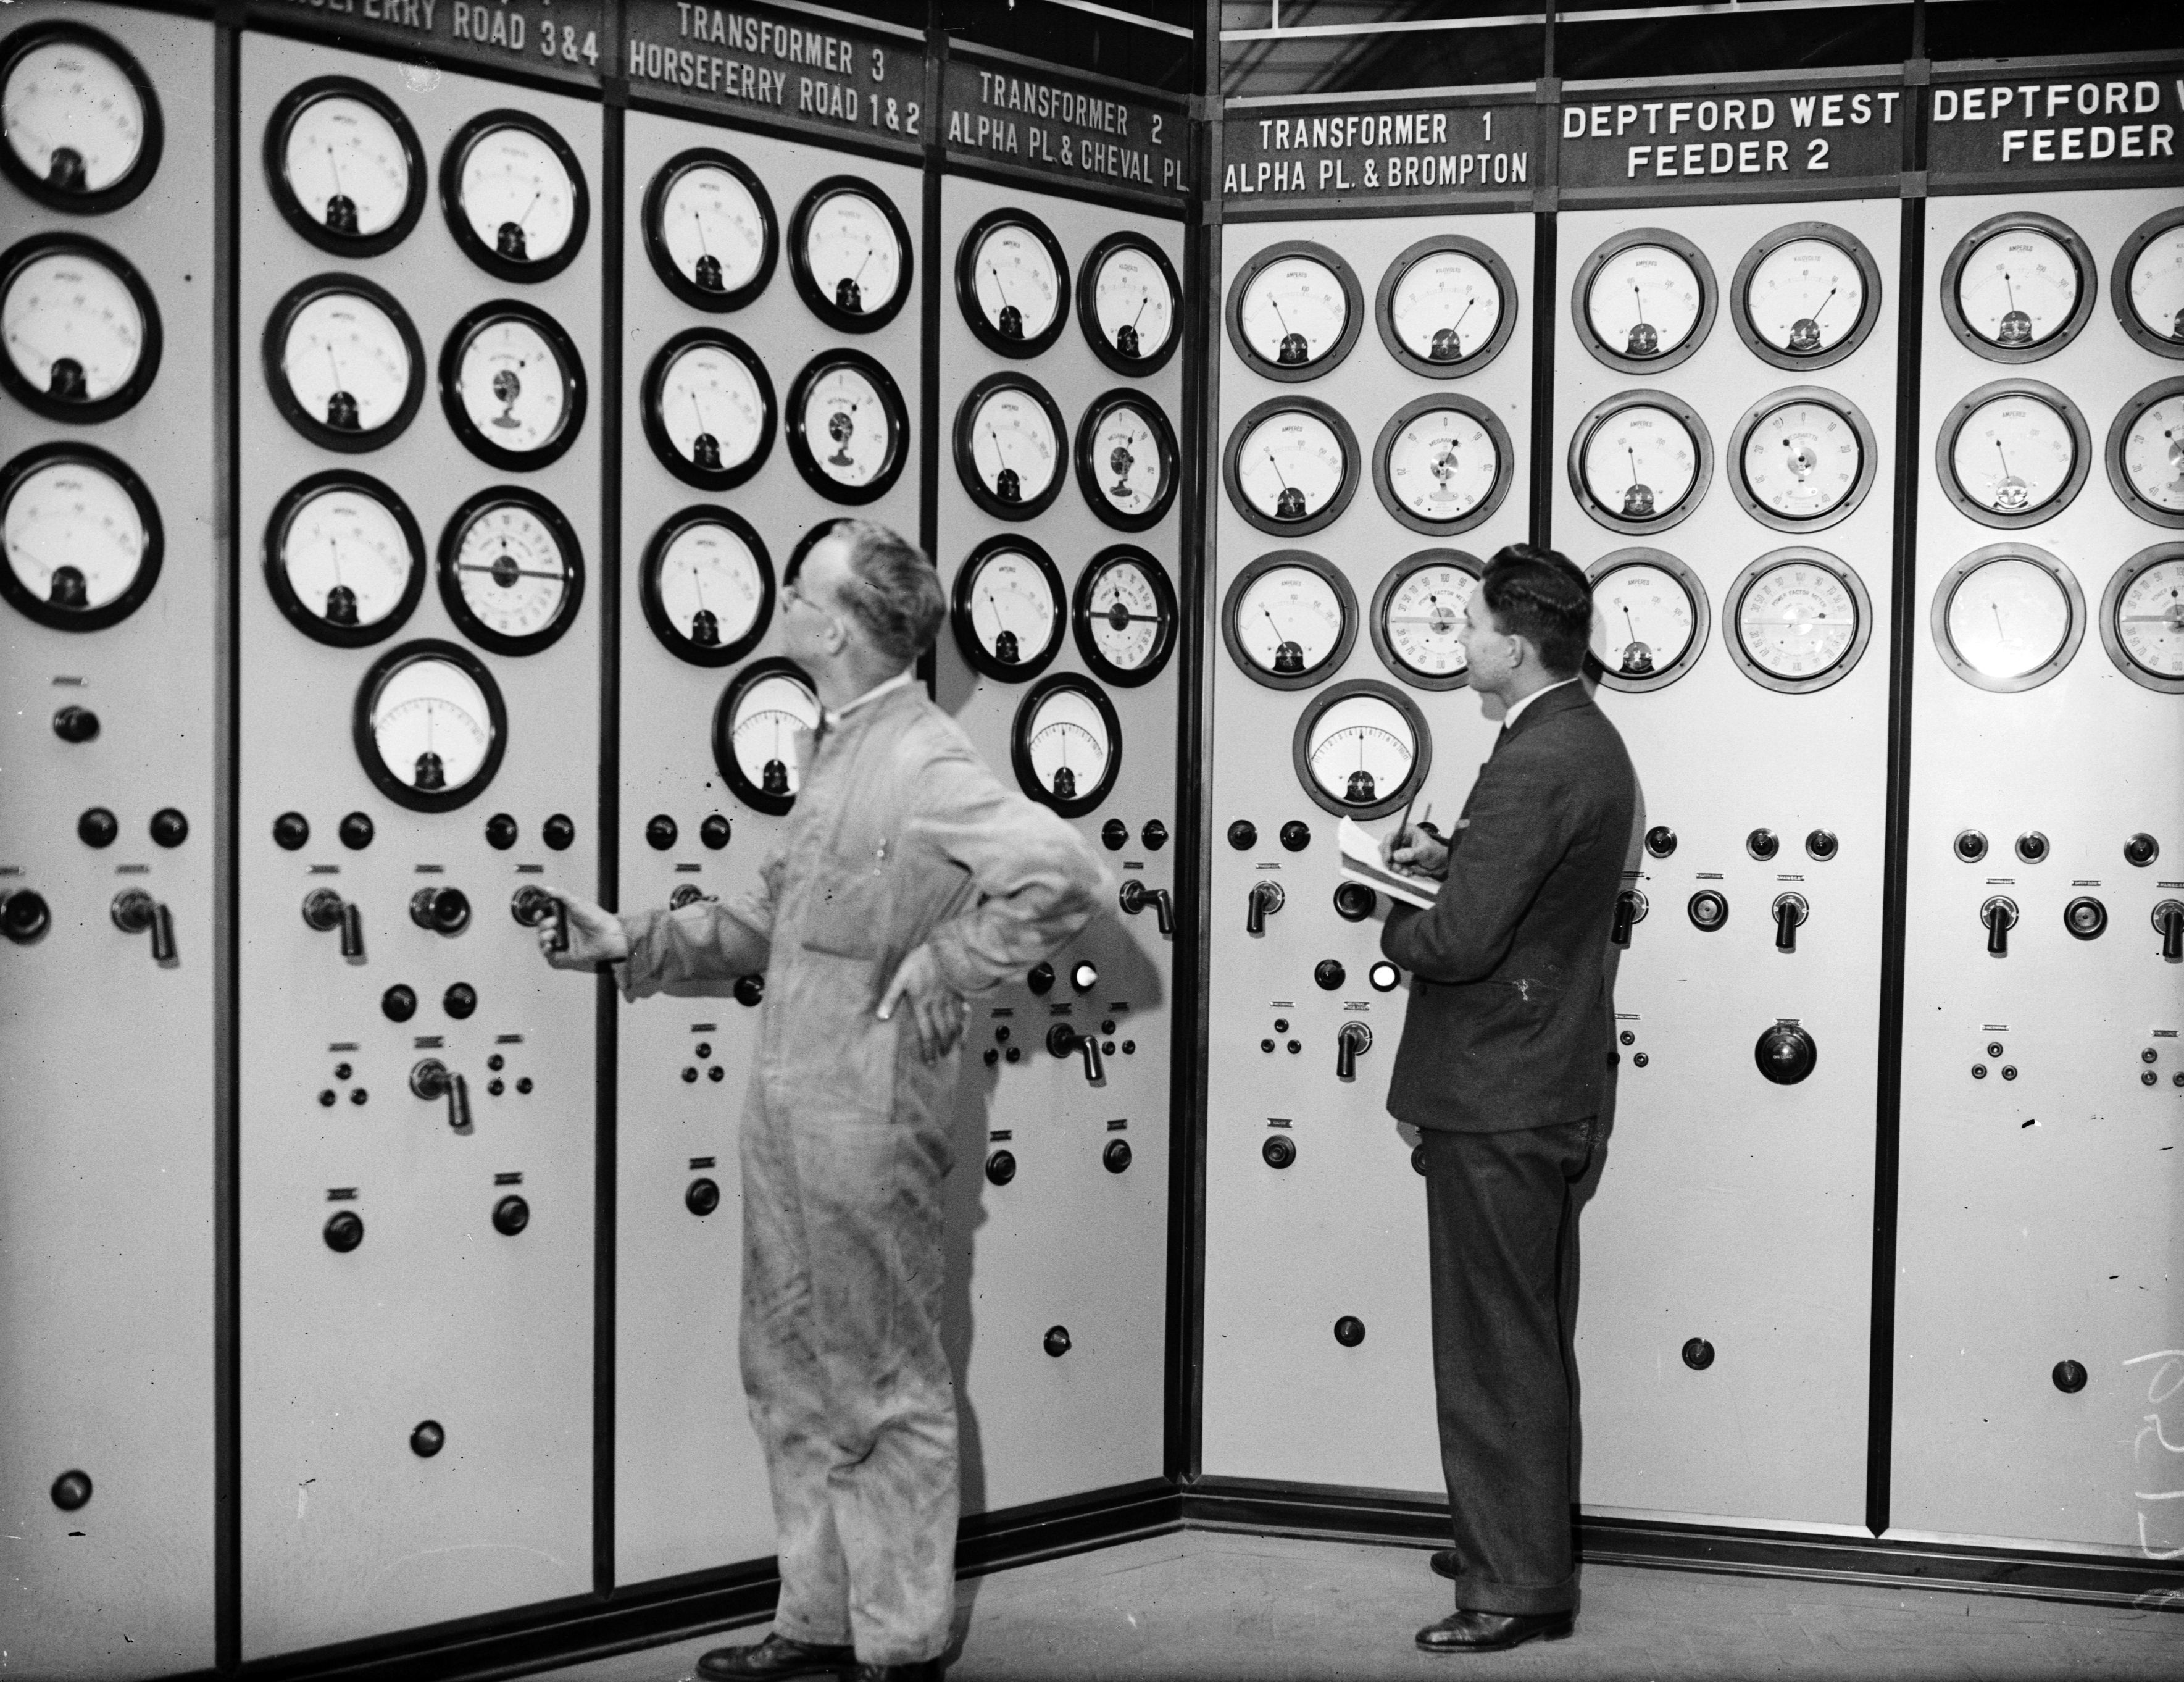 10th December 1932: Technicians consult a wall of dials for readings from the transformers and feeders at the Battersea Power Station, London. (Photo by Fox Photos/Getty Images)